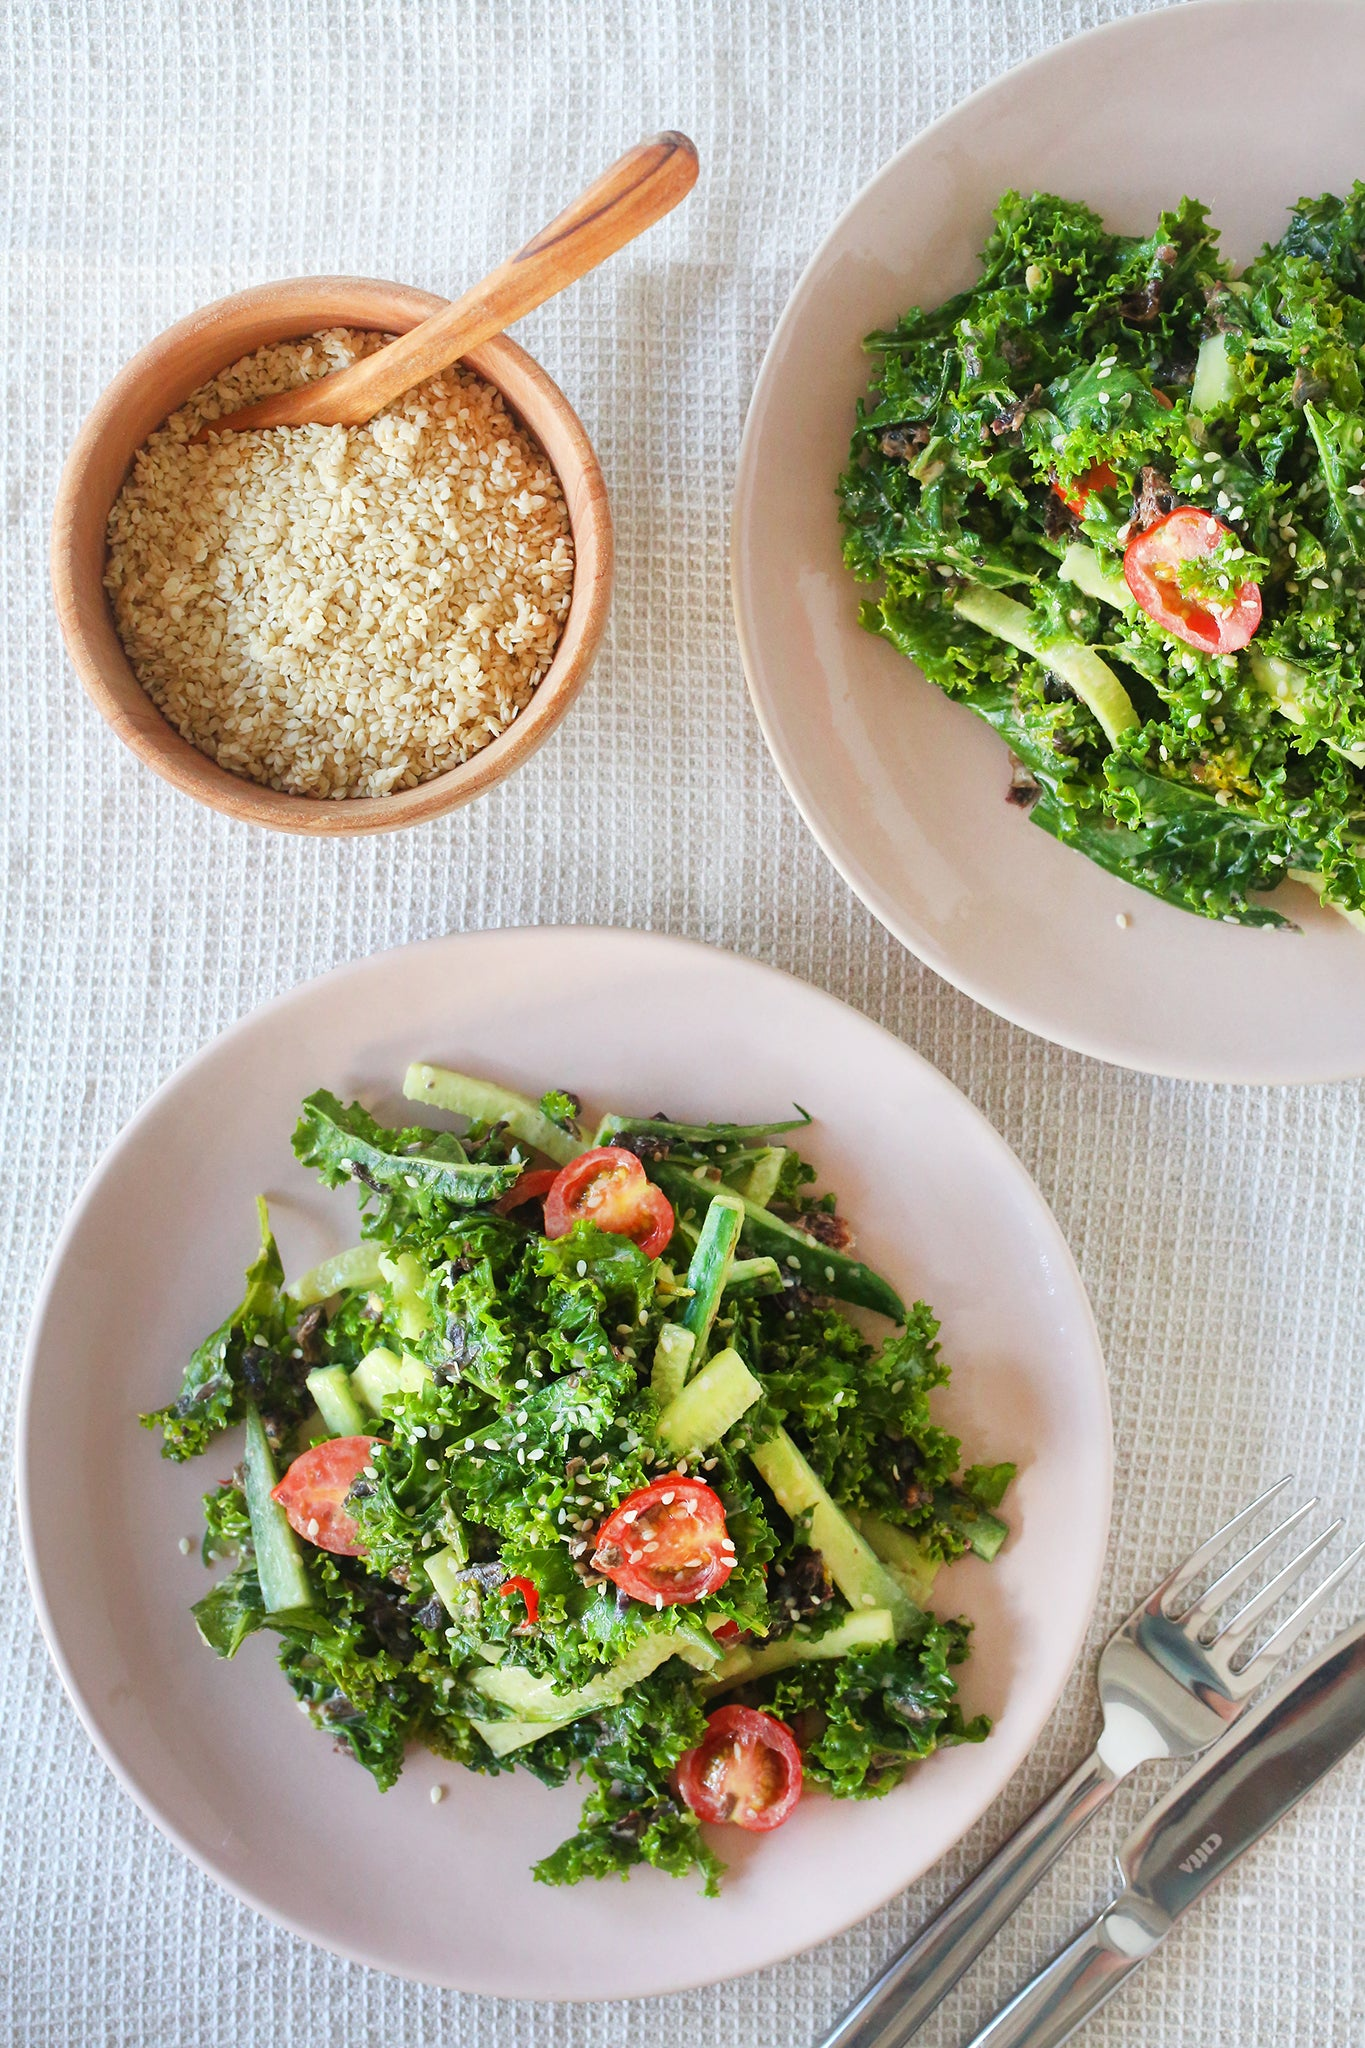 KALE, KARENGO & CUCUMBER SALAD with a delicious japanese inspired sesame seed dressing - vegan, plant-based, dairy free, gluten free, refined sugar free, nut free, healthy, seaweed, lunch, dinner, easy, under 20 minutes, begoodorganics